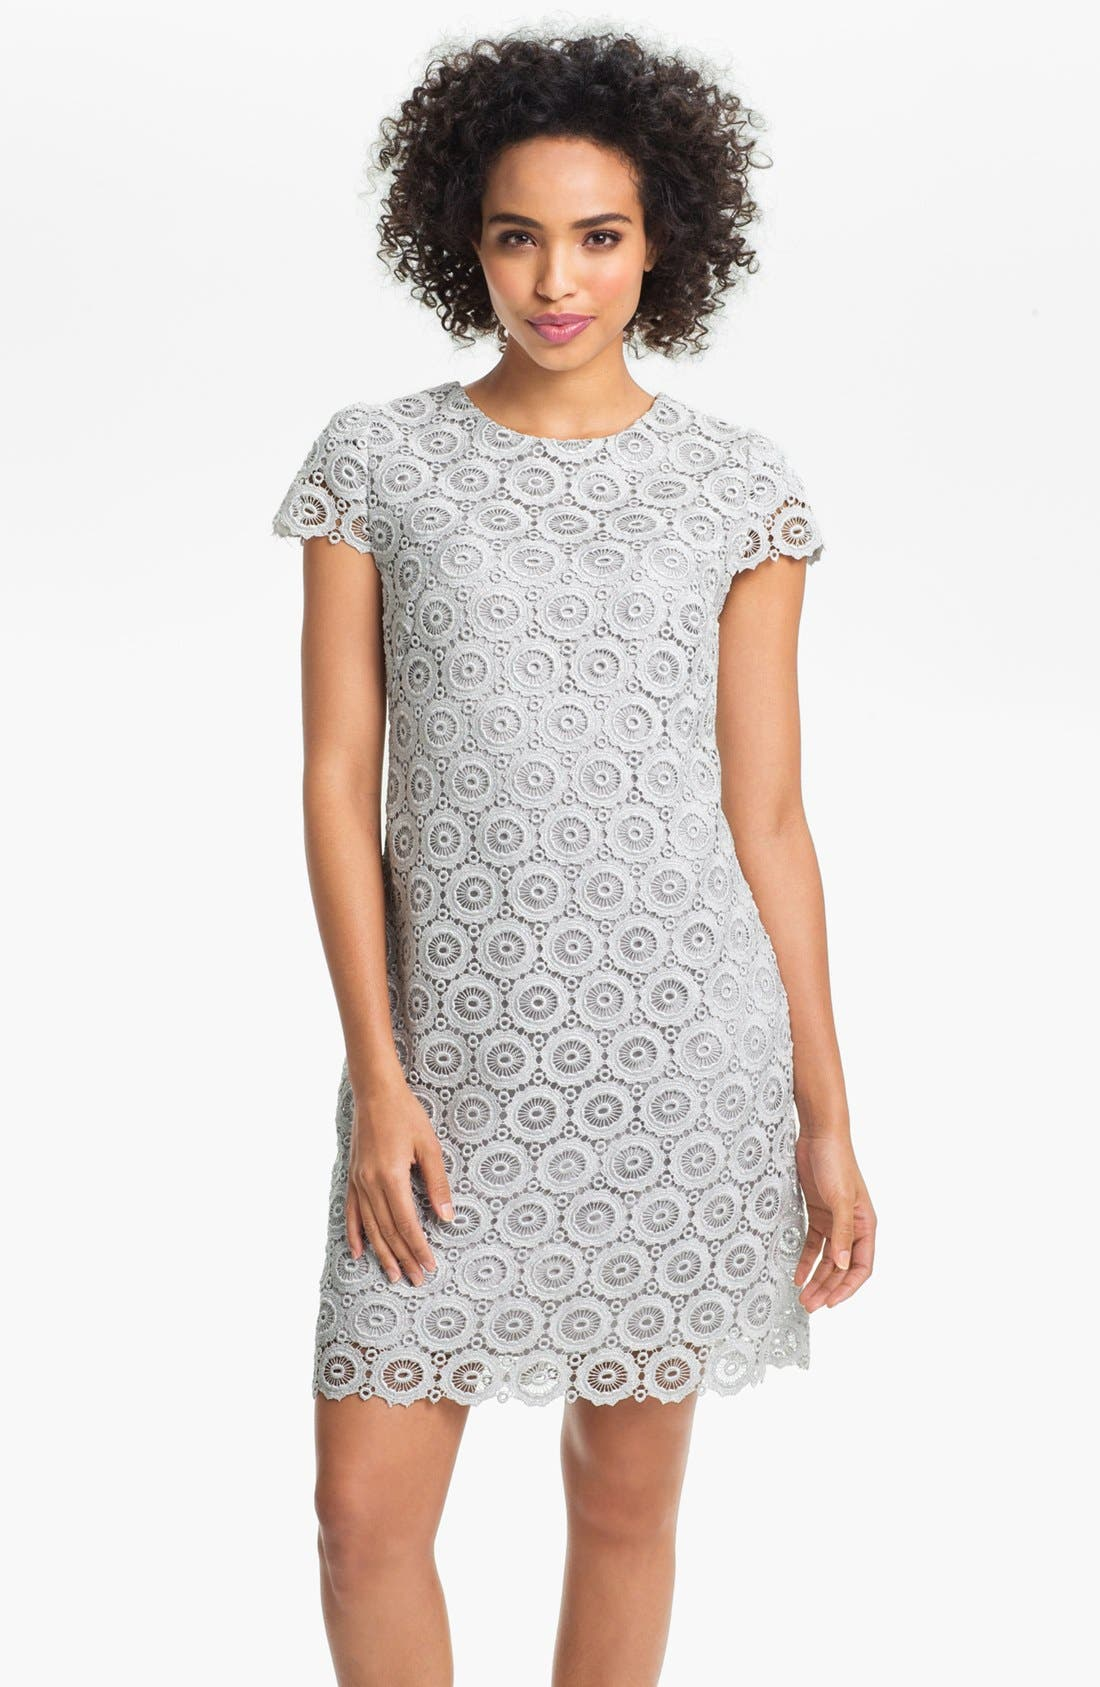 Alternate Image 1 Selected - Suzi Chin for Maggy Boutique Lace Shift Dress (Petite)